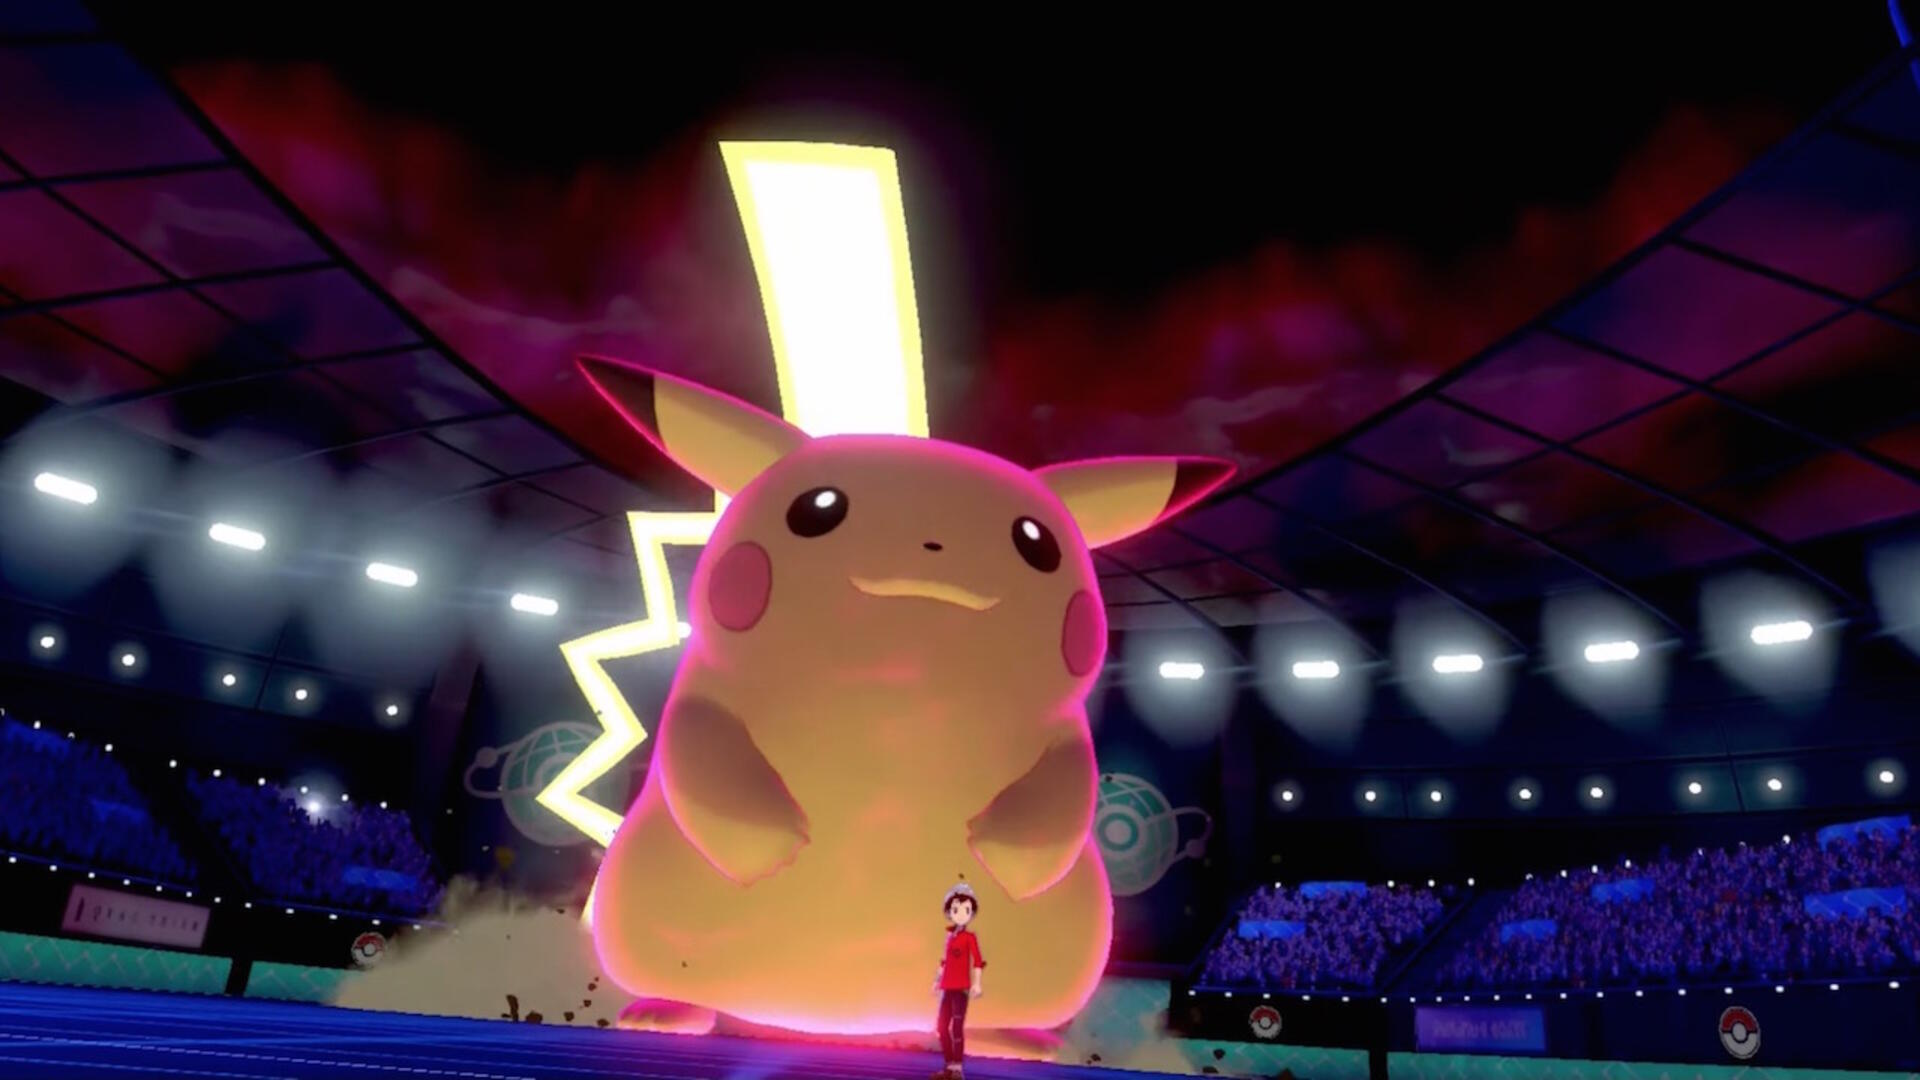 Pokemon Sword and Shield Pikachu - How to Find Pikachu from Let's Go